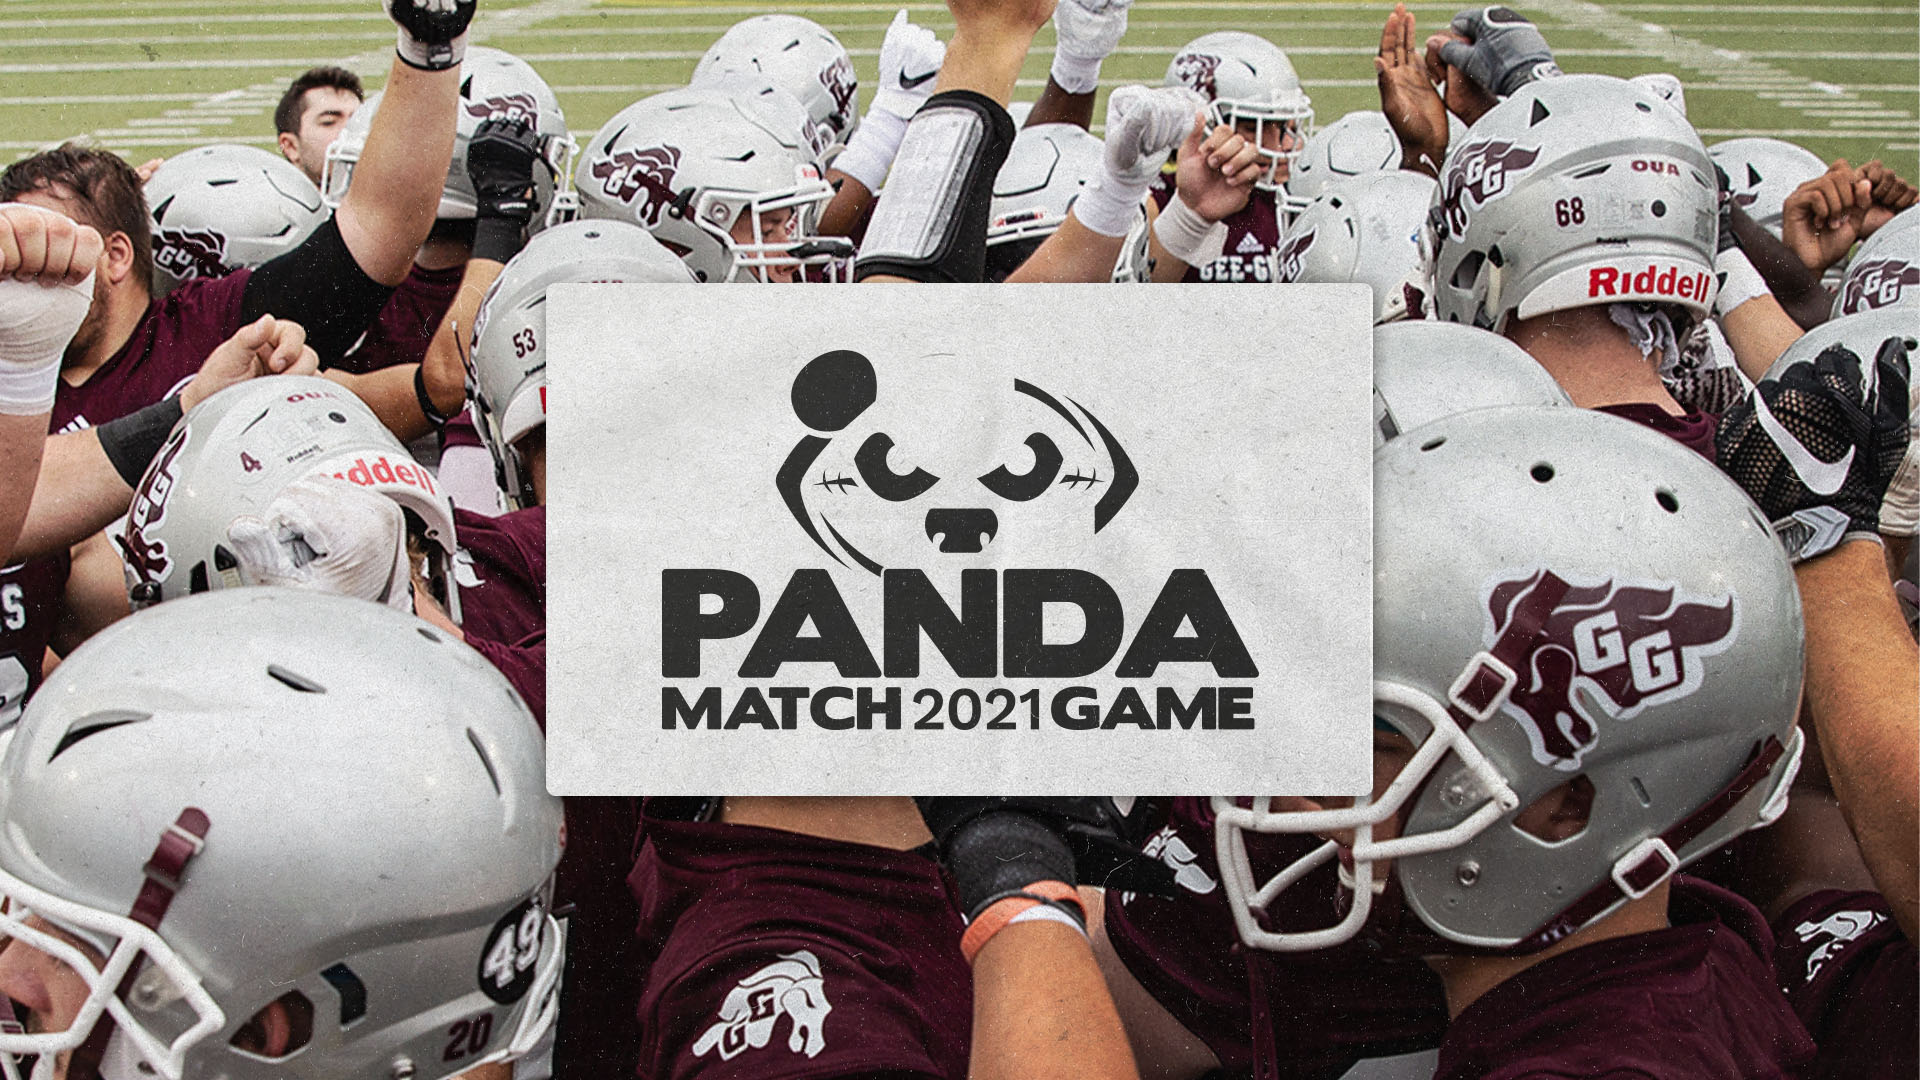 Gee-Gees football players and Panda Game logo